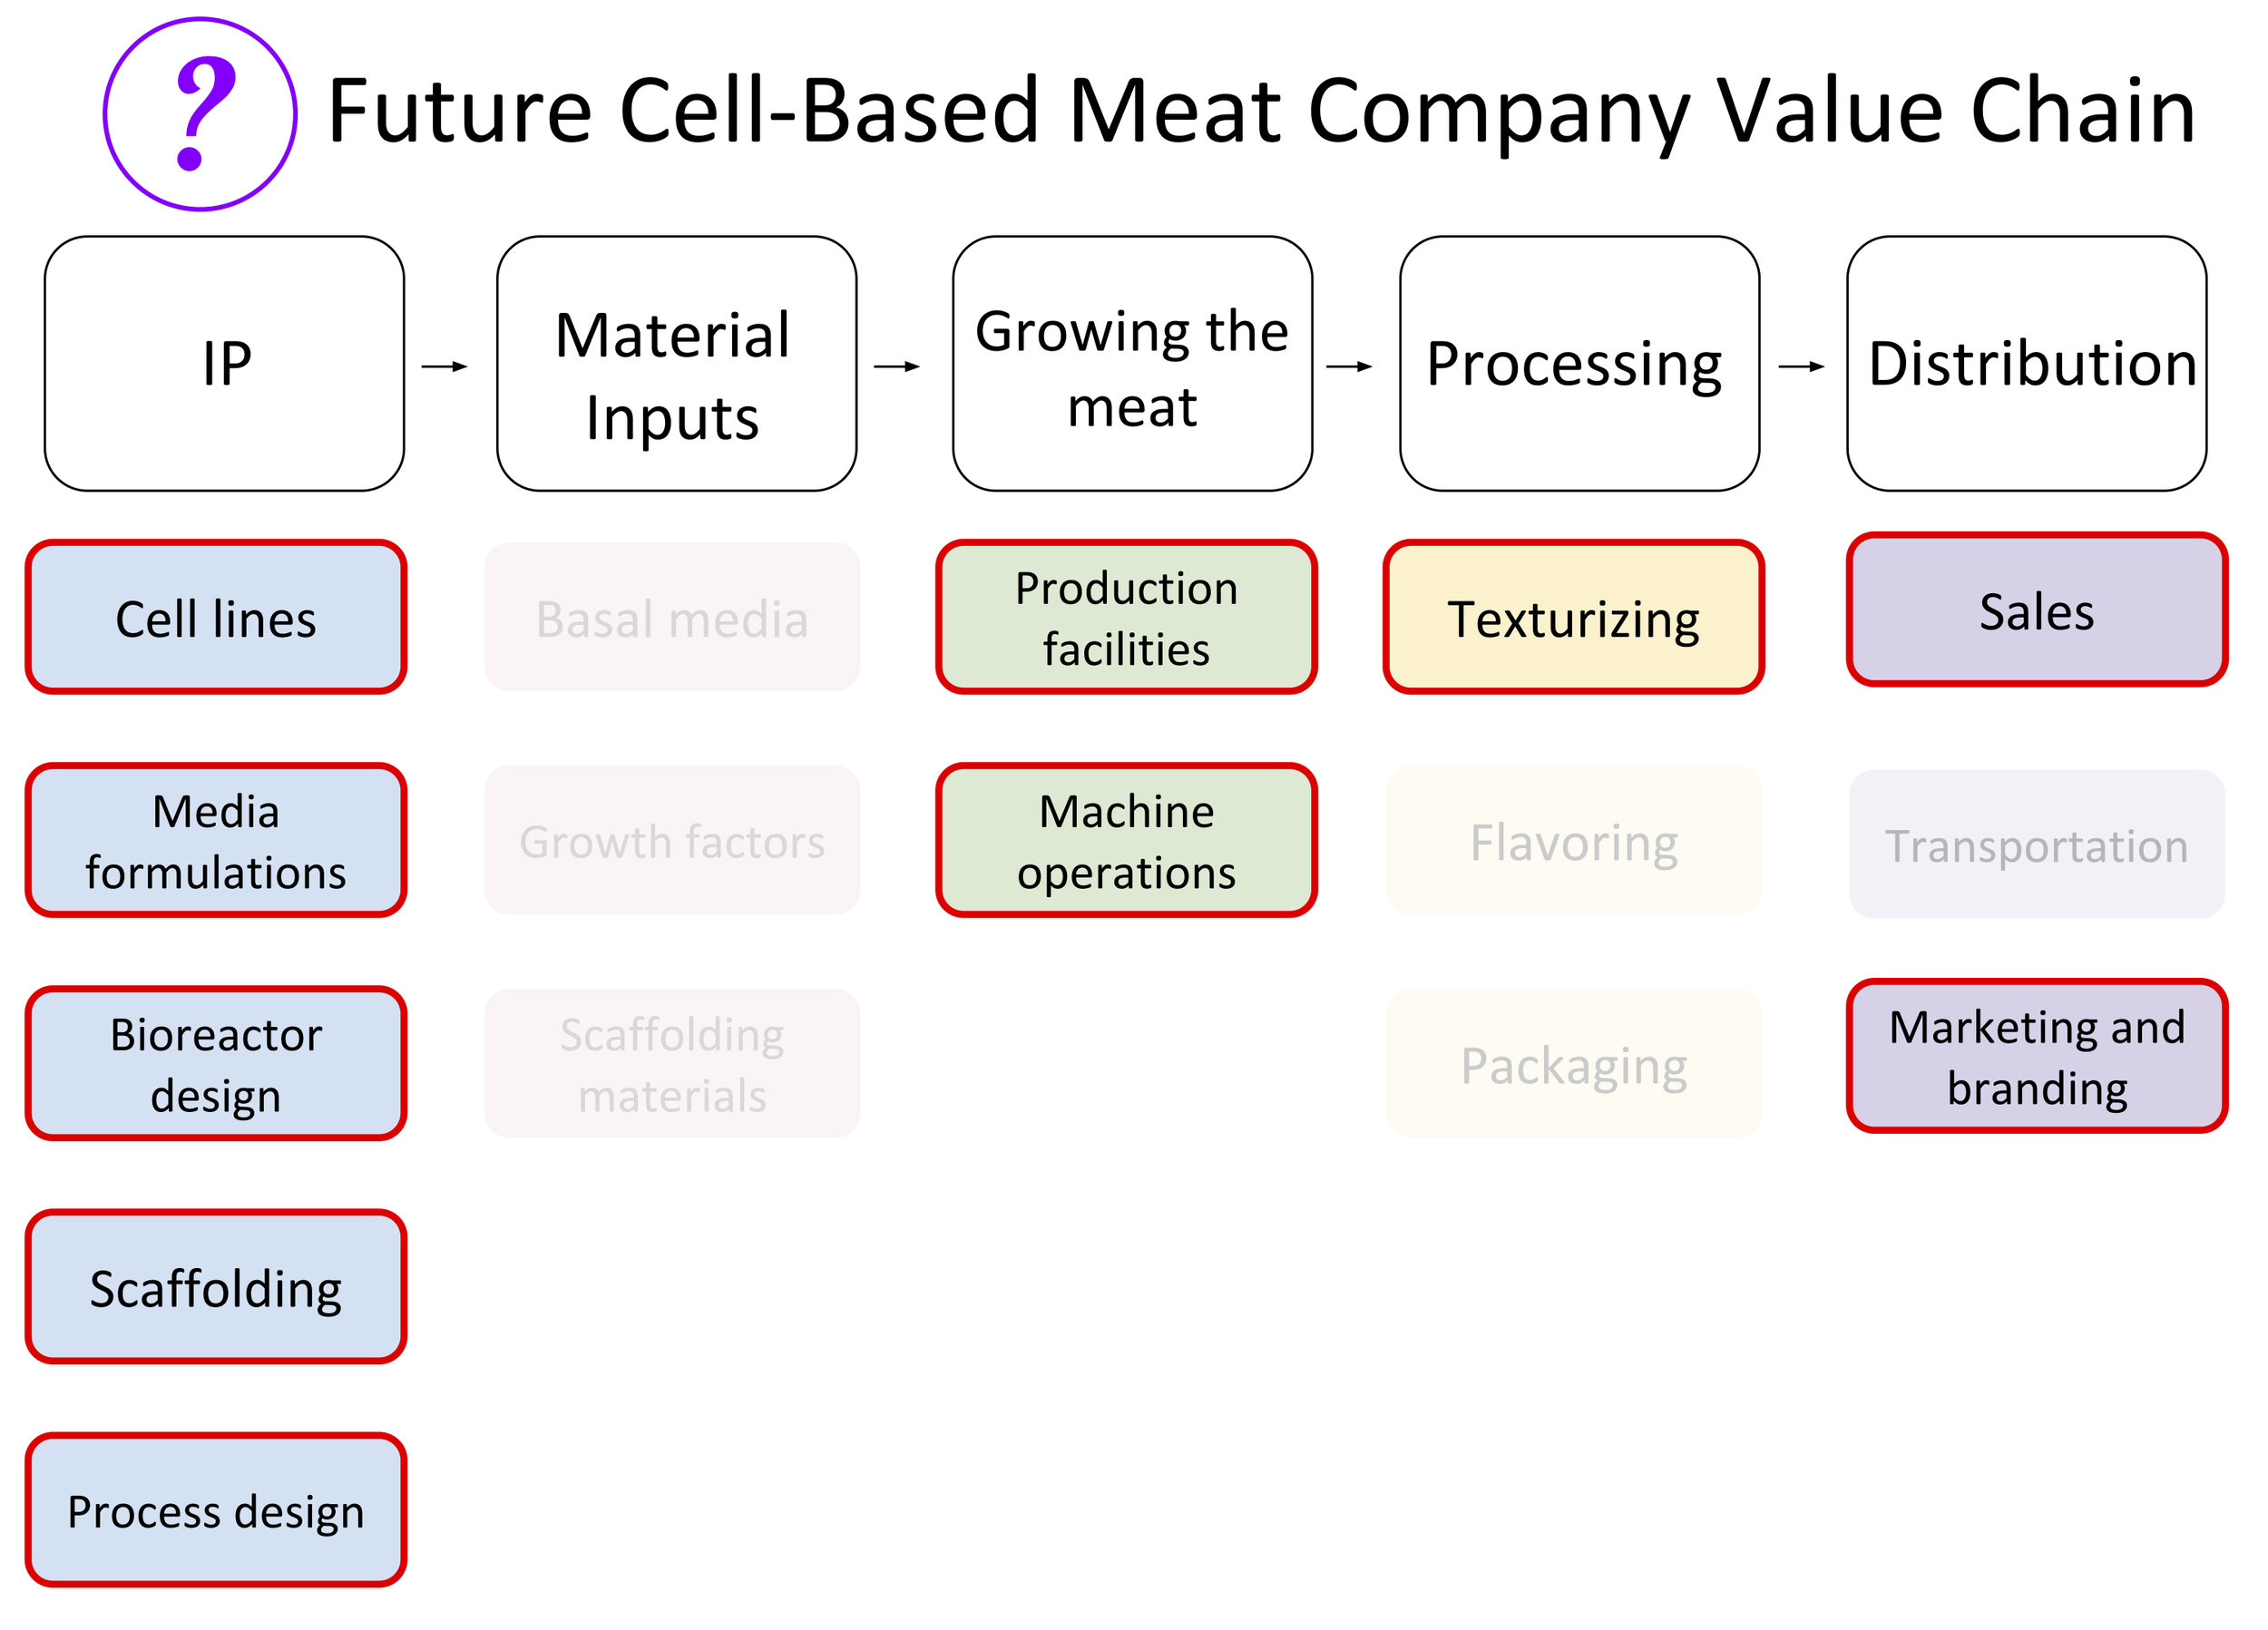 Future Cell-Based Meat Company Value Chain.jpg